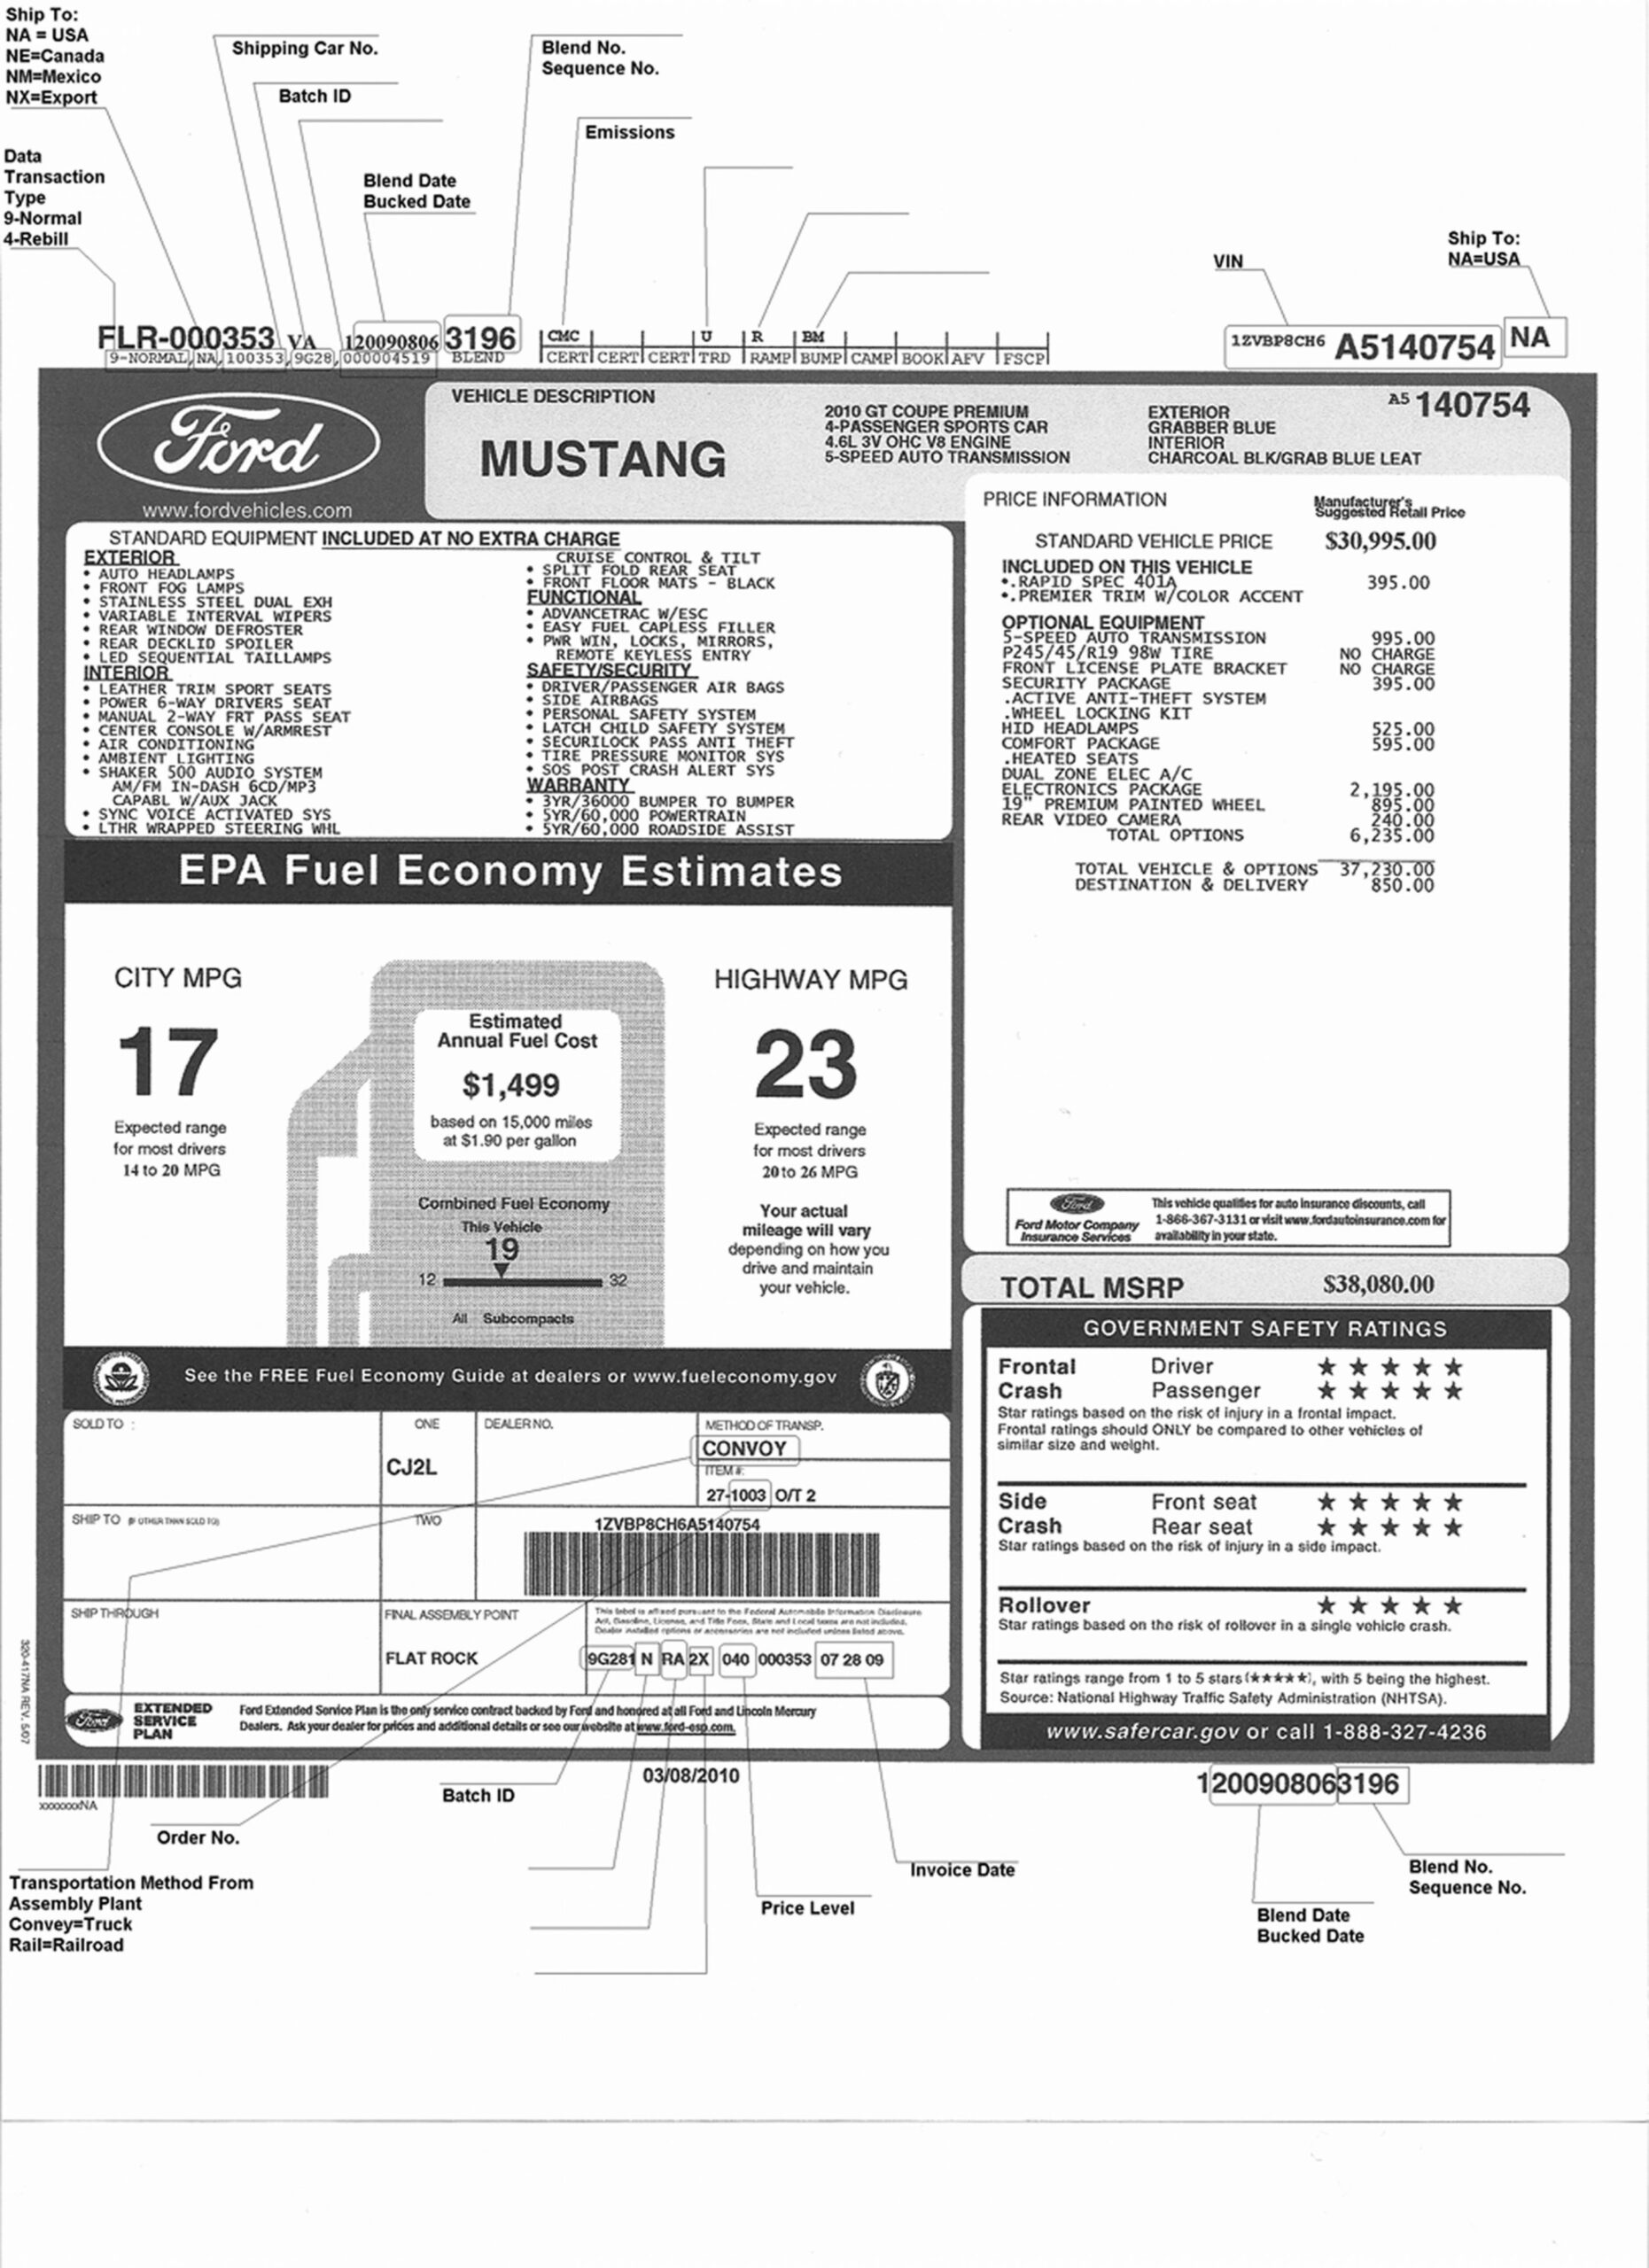 Window Sticker and Vin Info - The Mustang Source - Ford Mustang Forums - ford window sticker lookup 2020